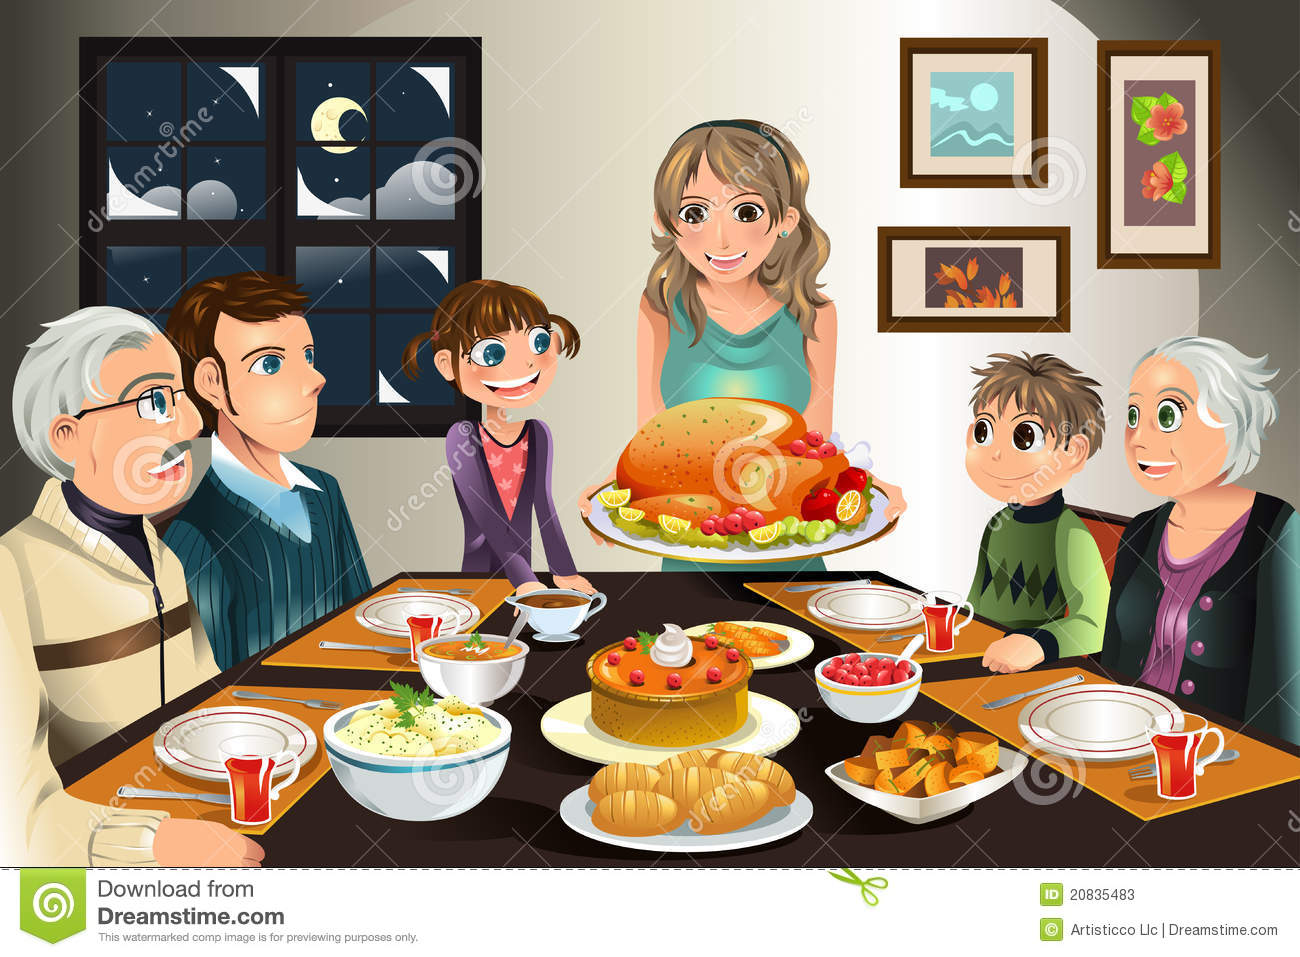 ... vector illustration of a family having a Thanksgiving dinner together